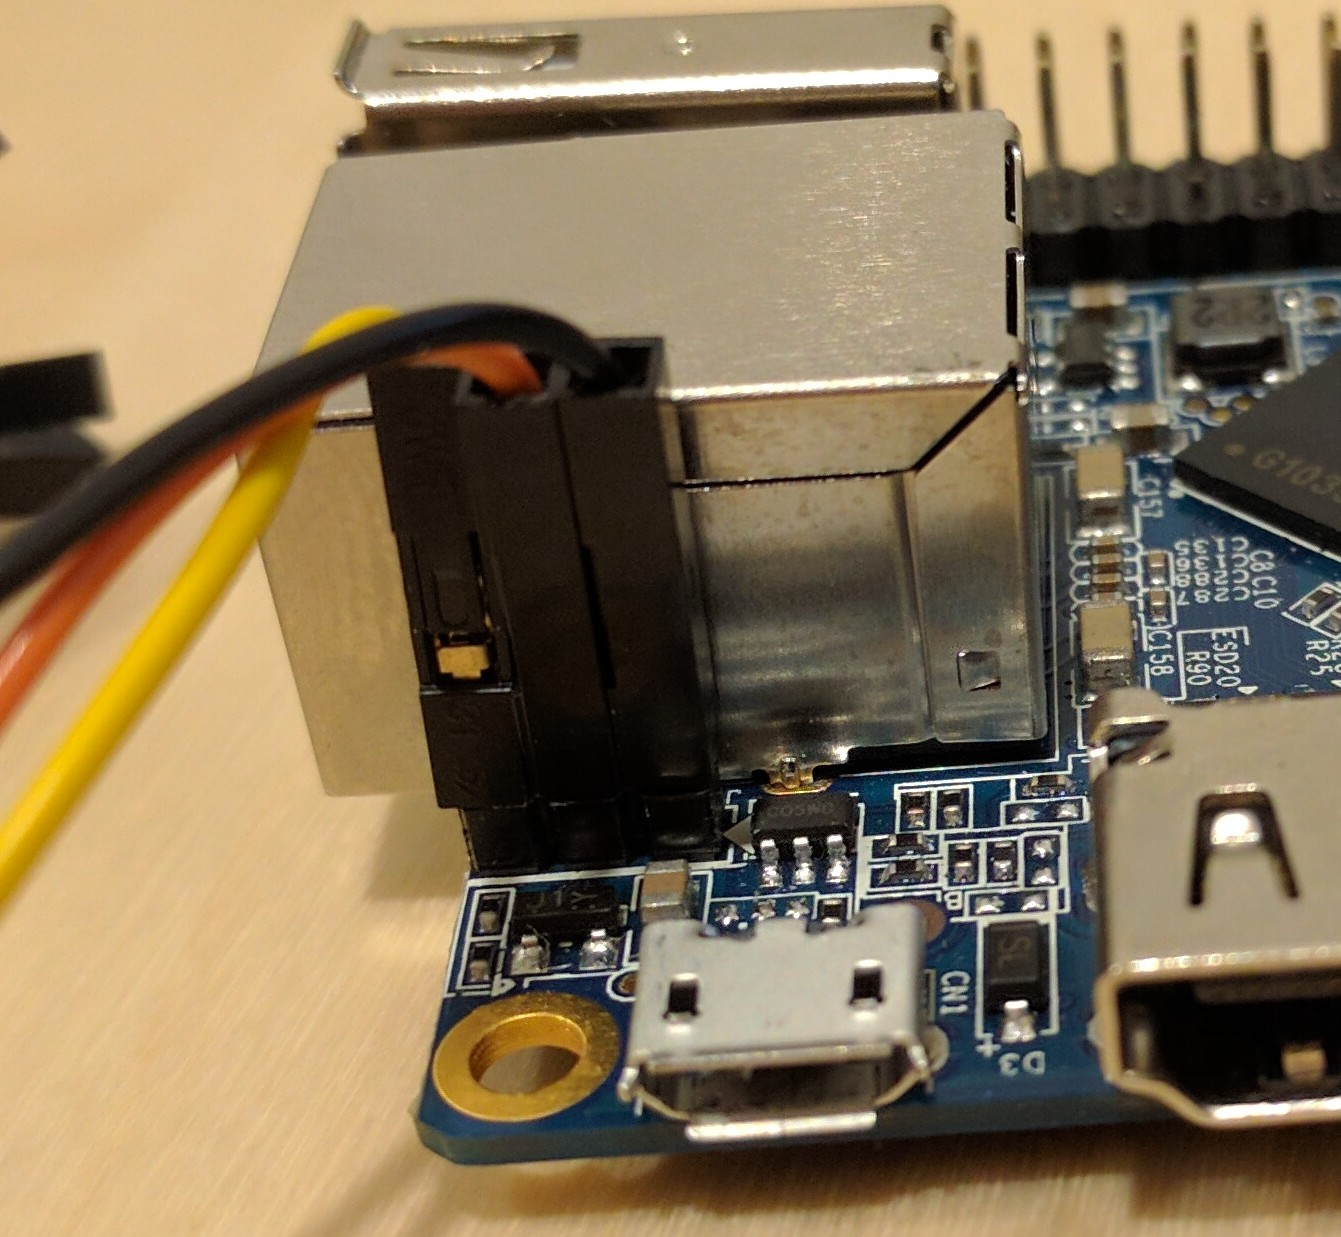 Building and Booting Upstream Linux and U-Boot for Orange Pi One ARM